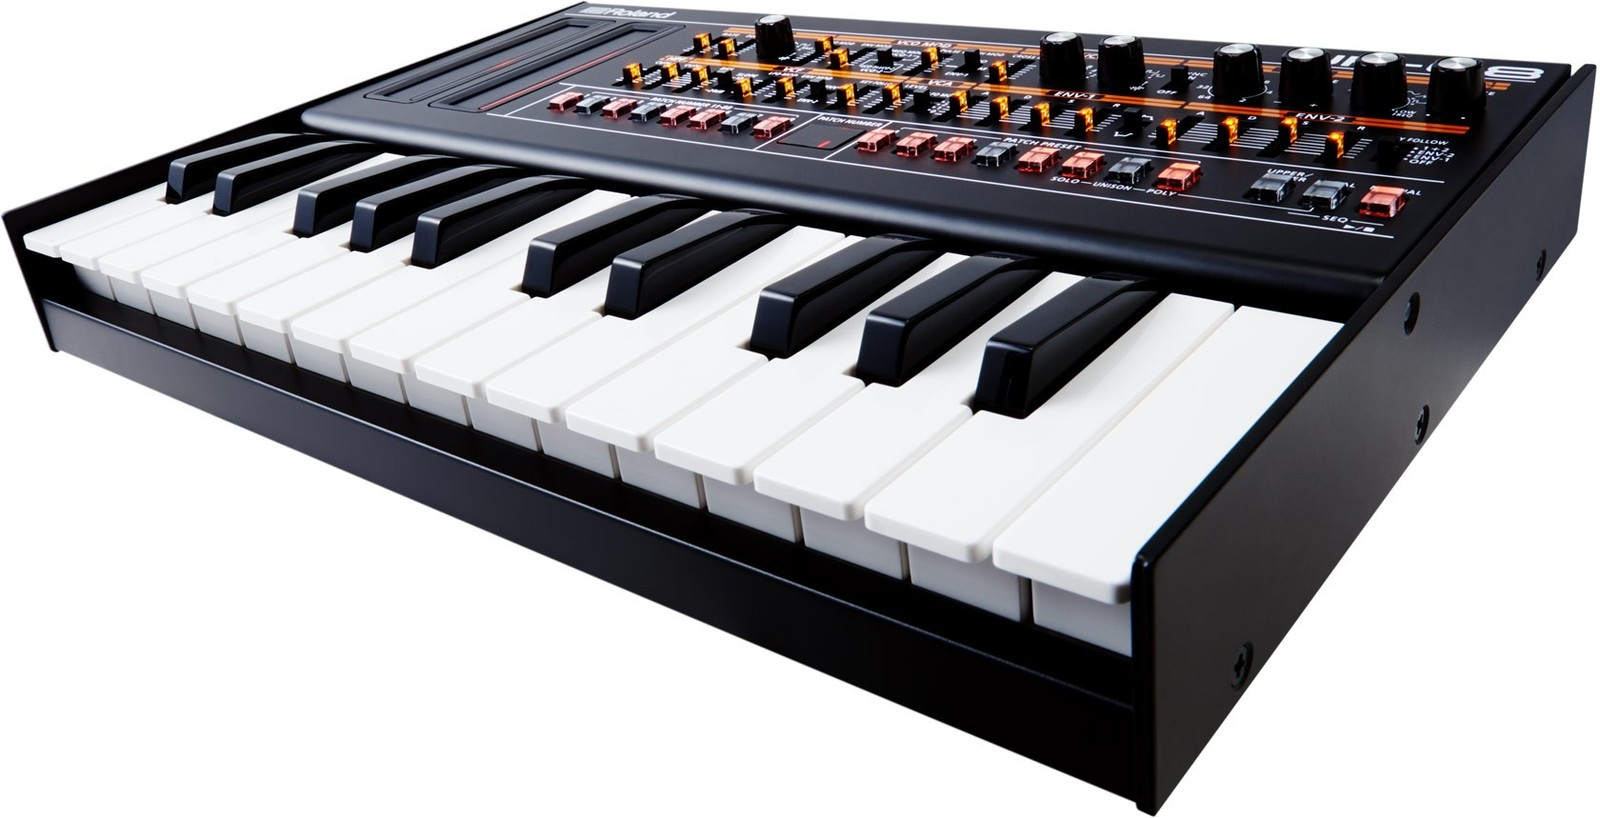 ROLAND-K25m-Boutique-Limited-Edition-sku-18774